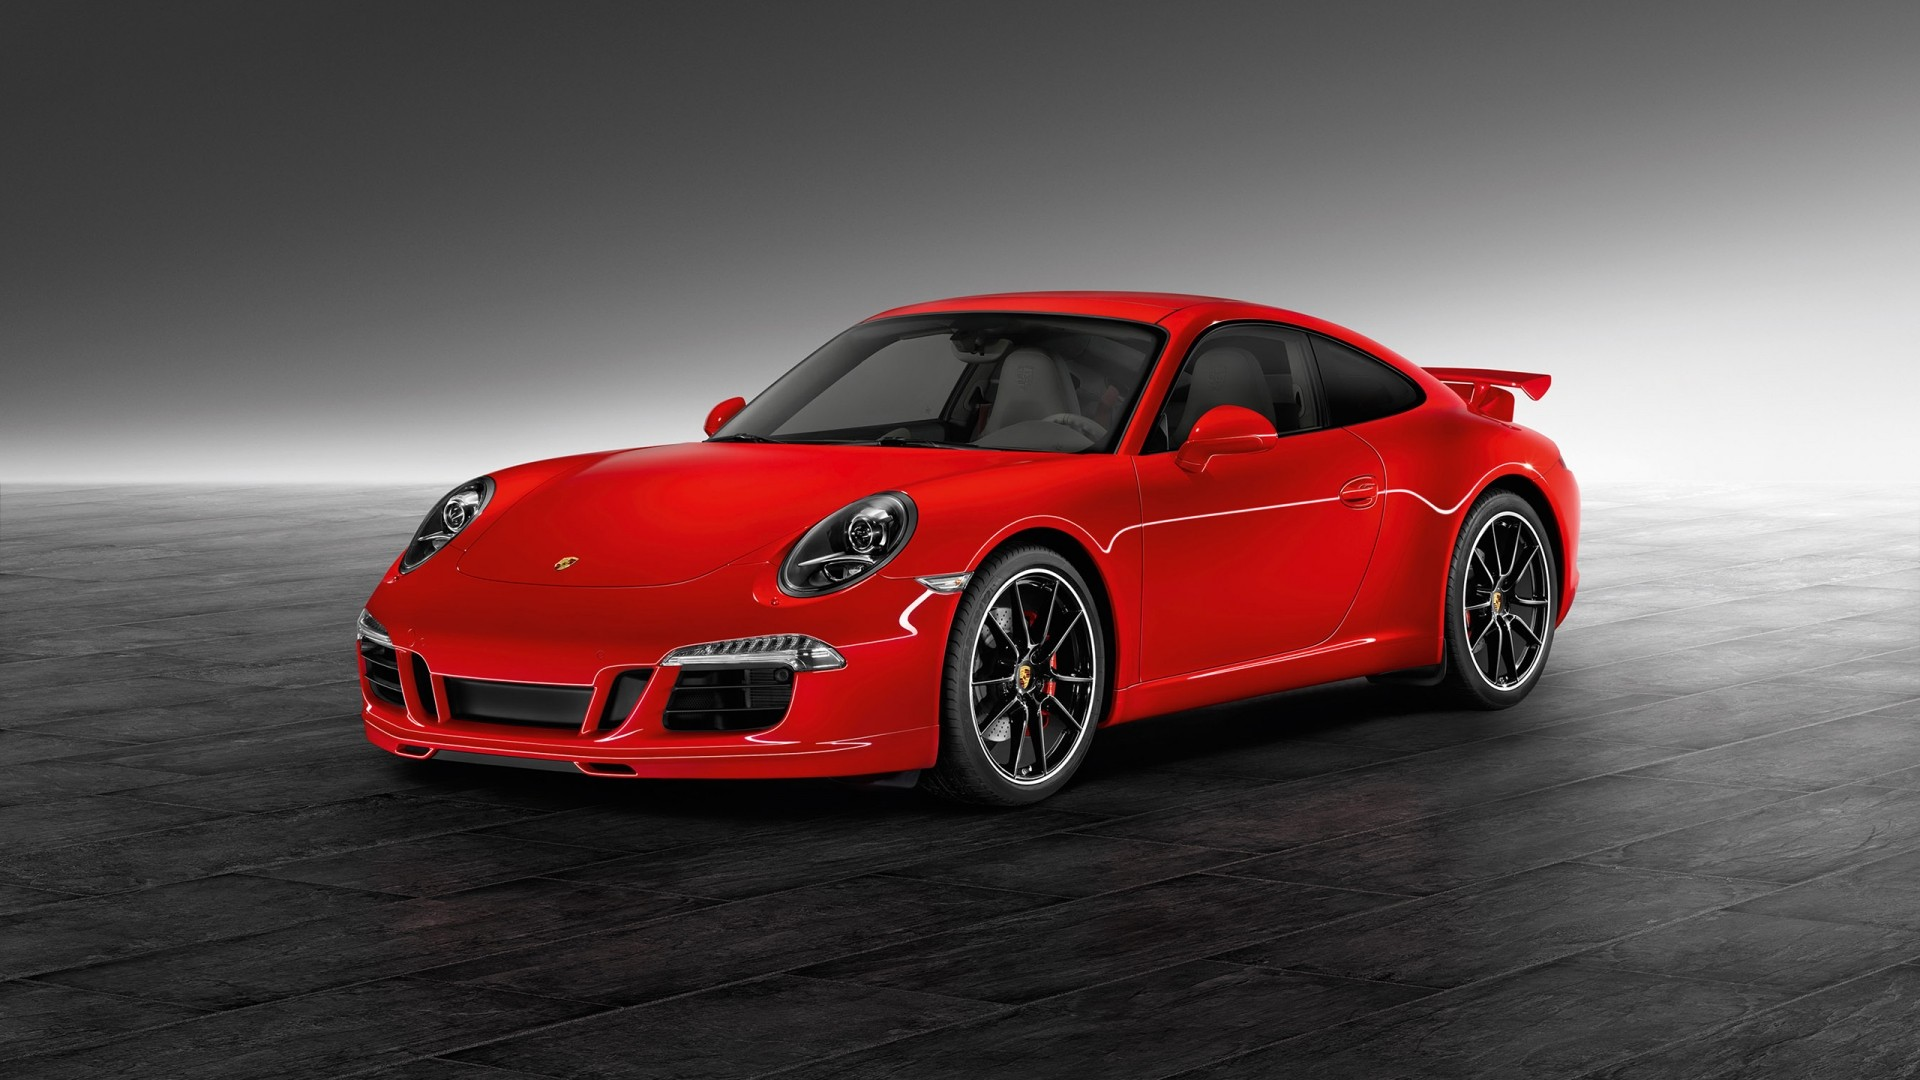 Porsche 911 Turbo Red Car Wheels